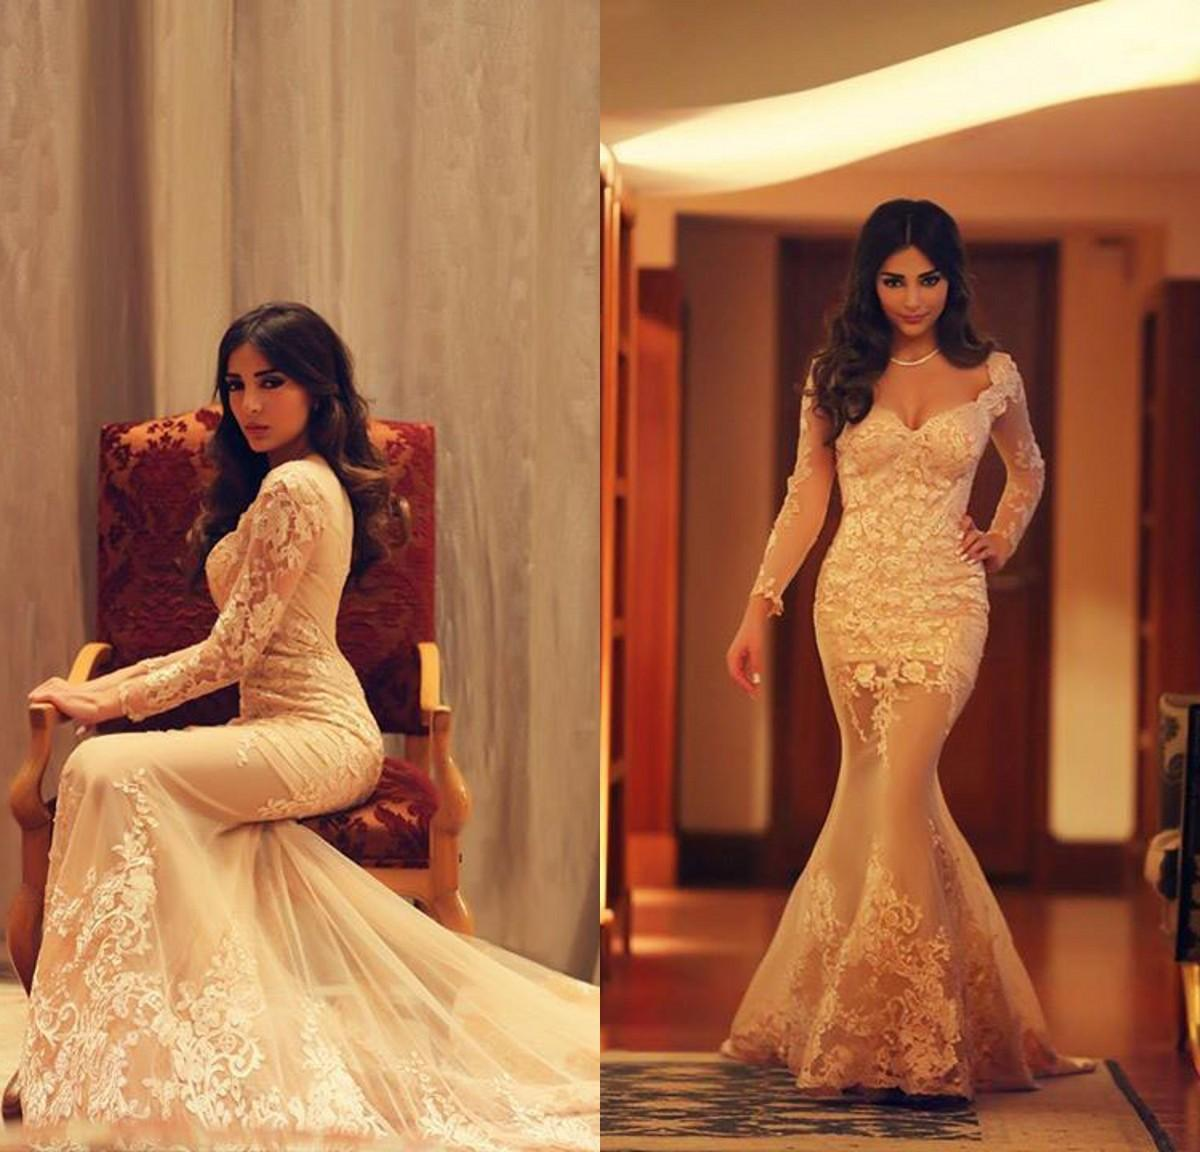 Glamorous Long Sleeve Evening Gowns From Eiffelbride With ...